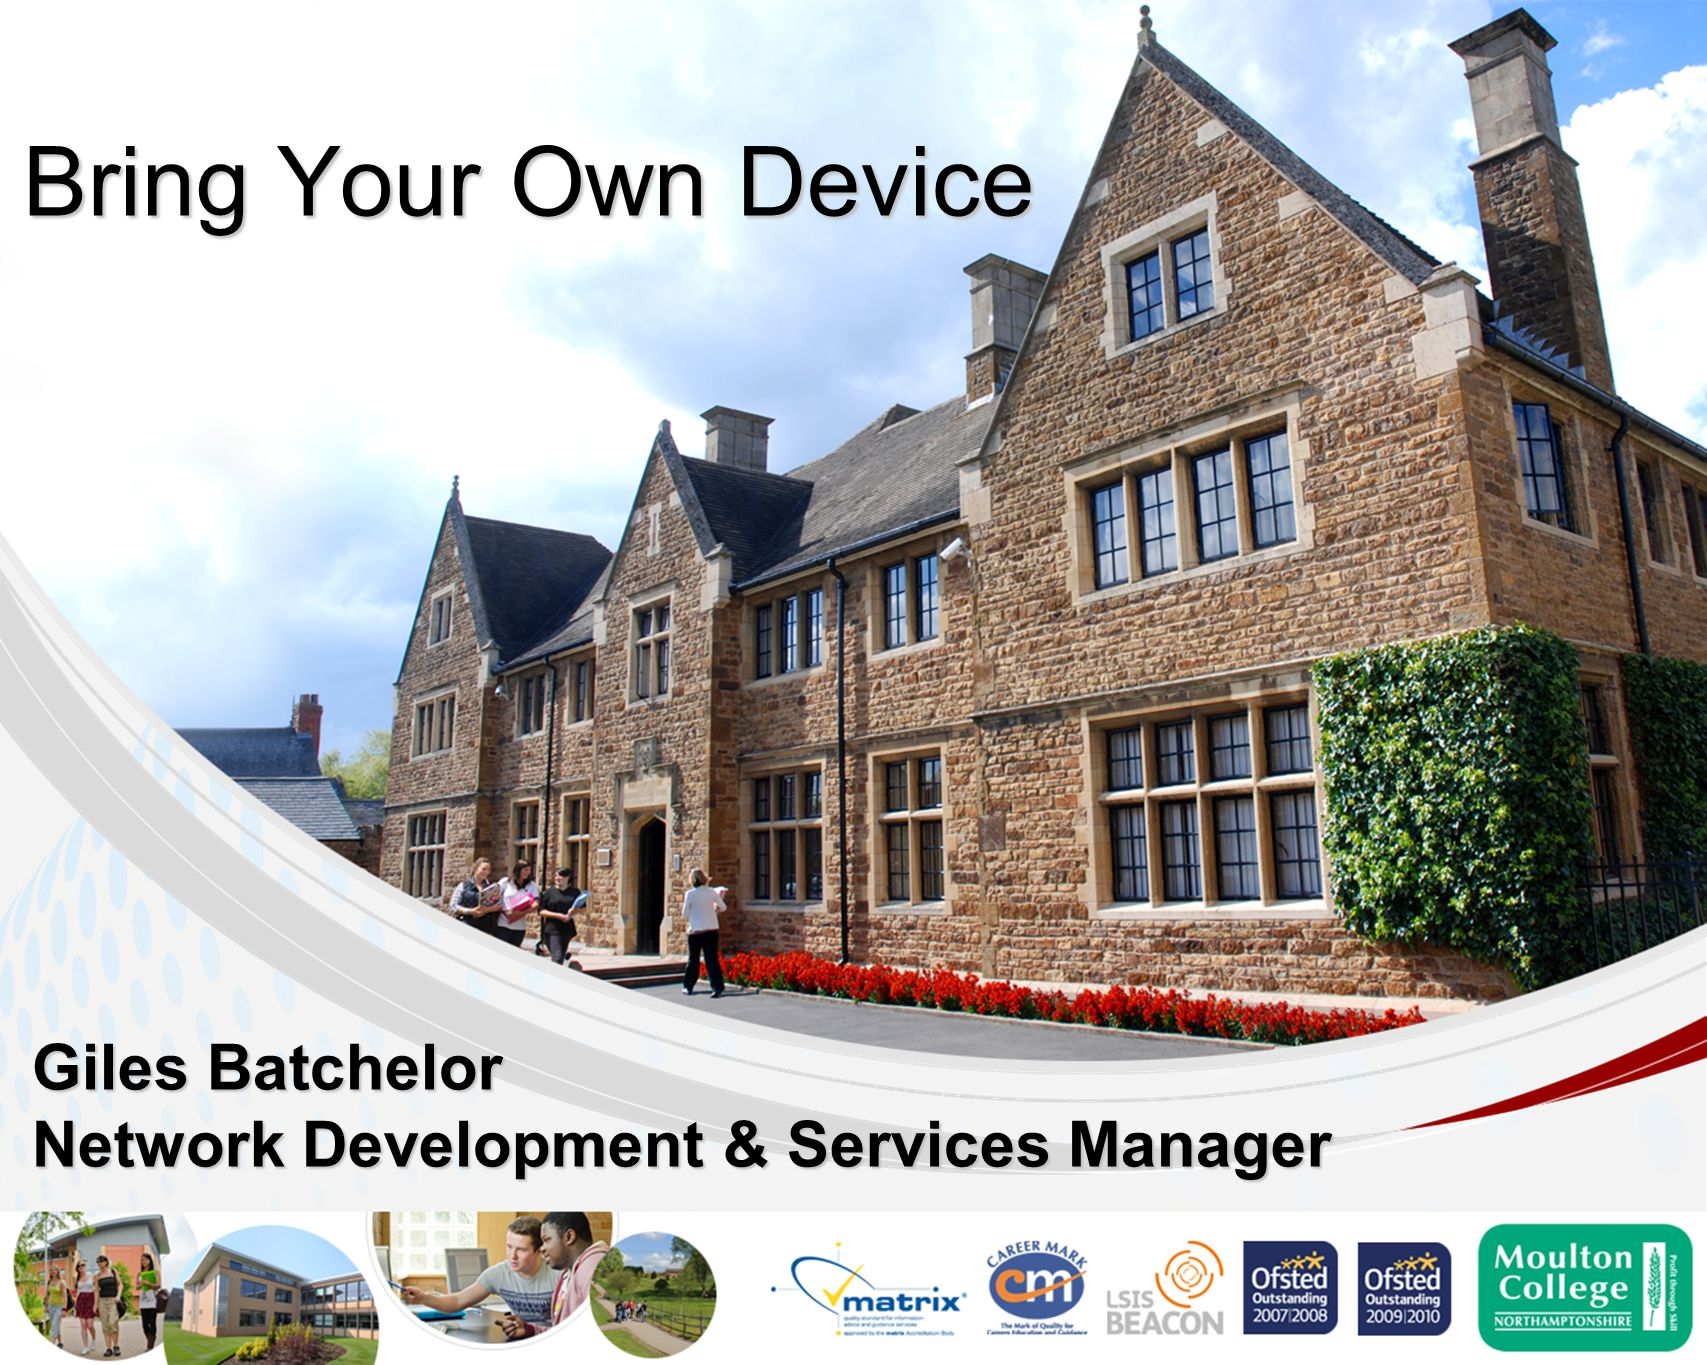 Giles Batchelor Network Development & Services Manager Bring Your Own Device